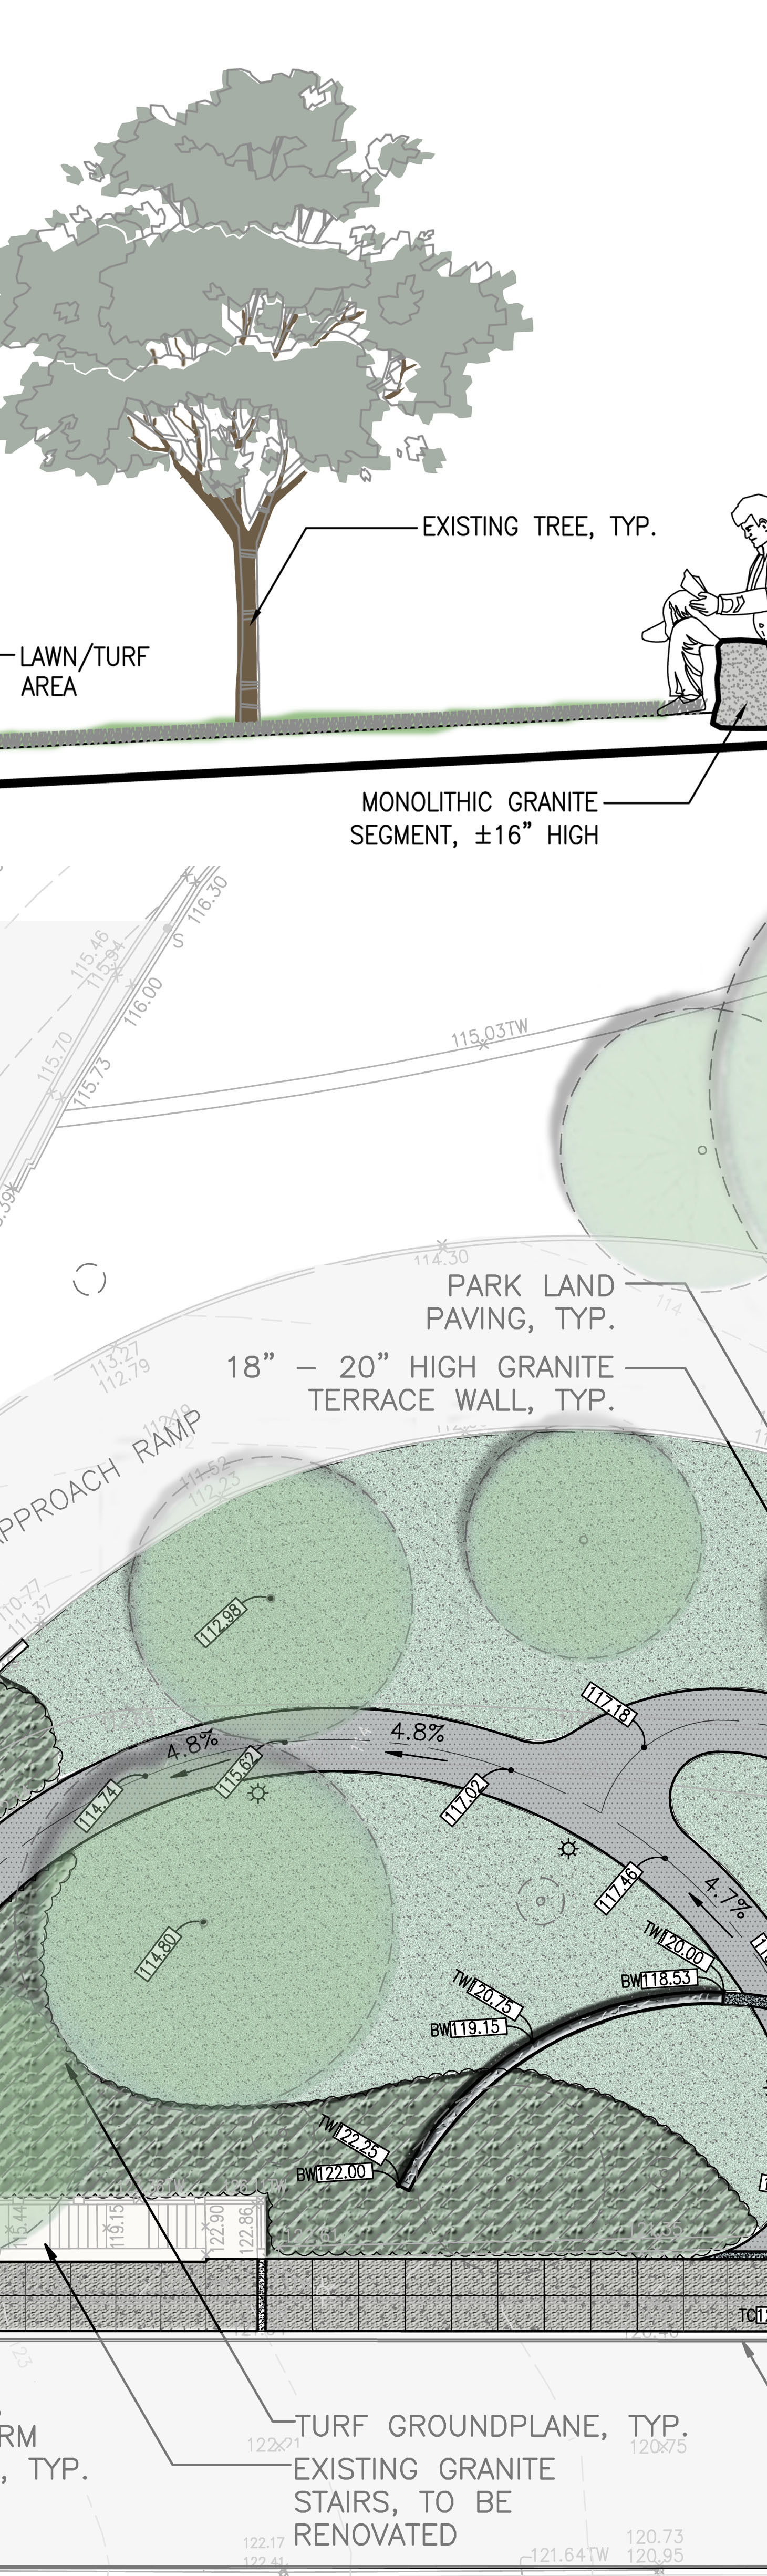 Longfellow Site Plan-Section